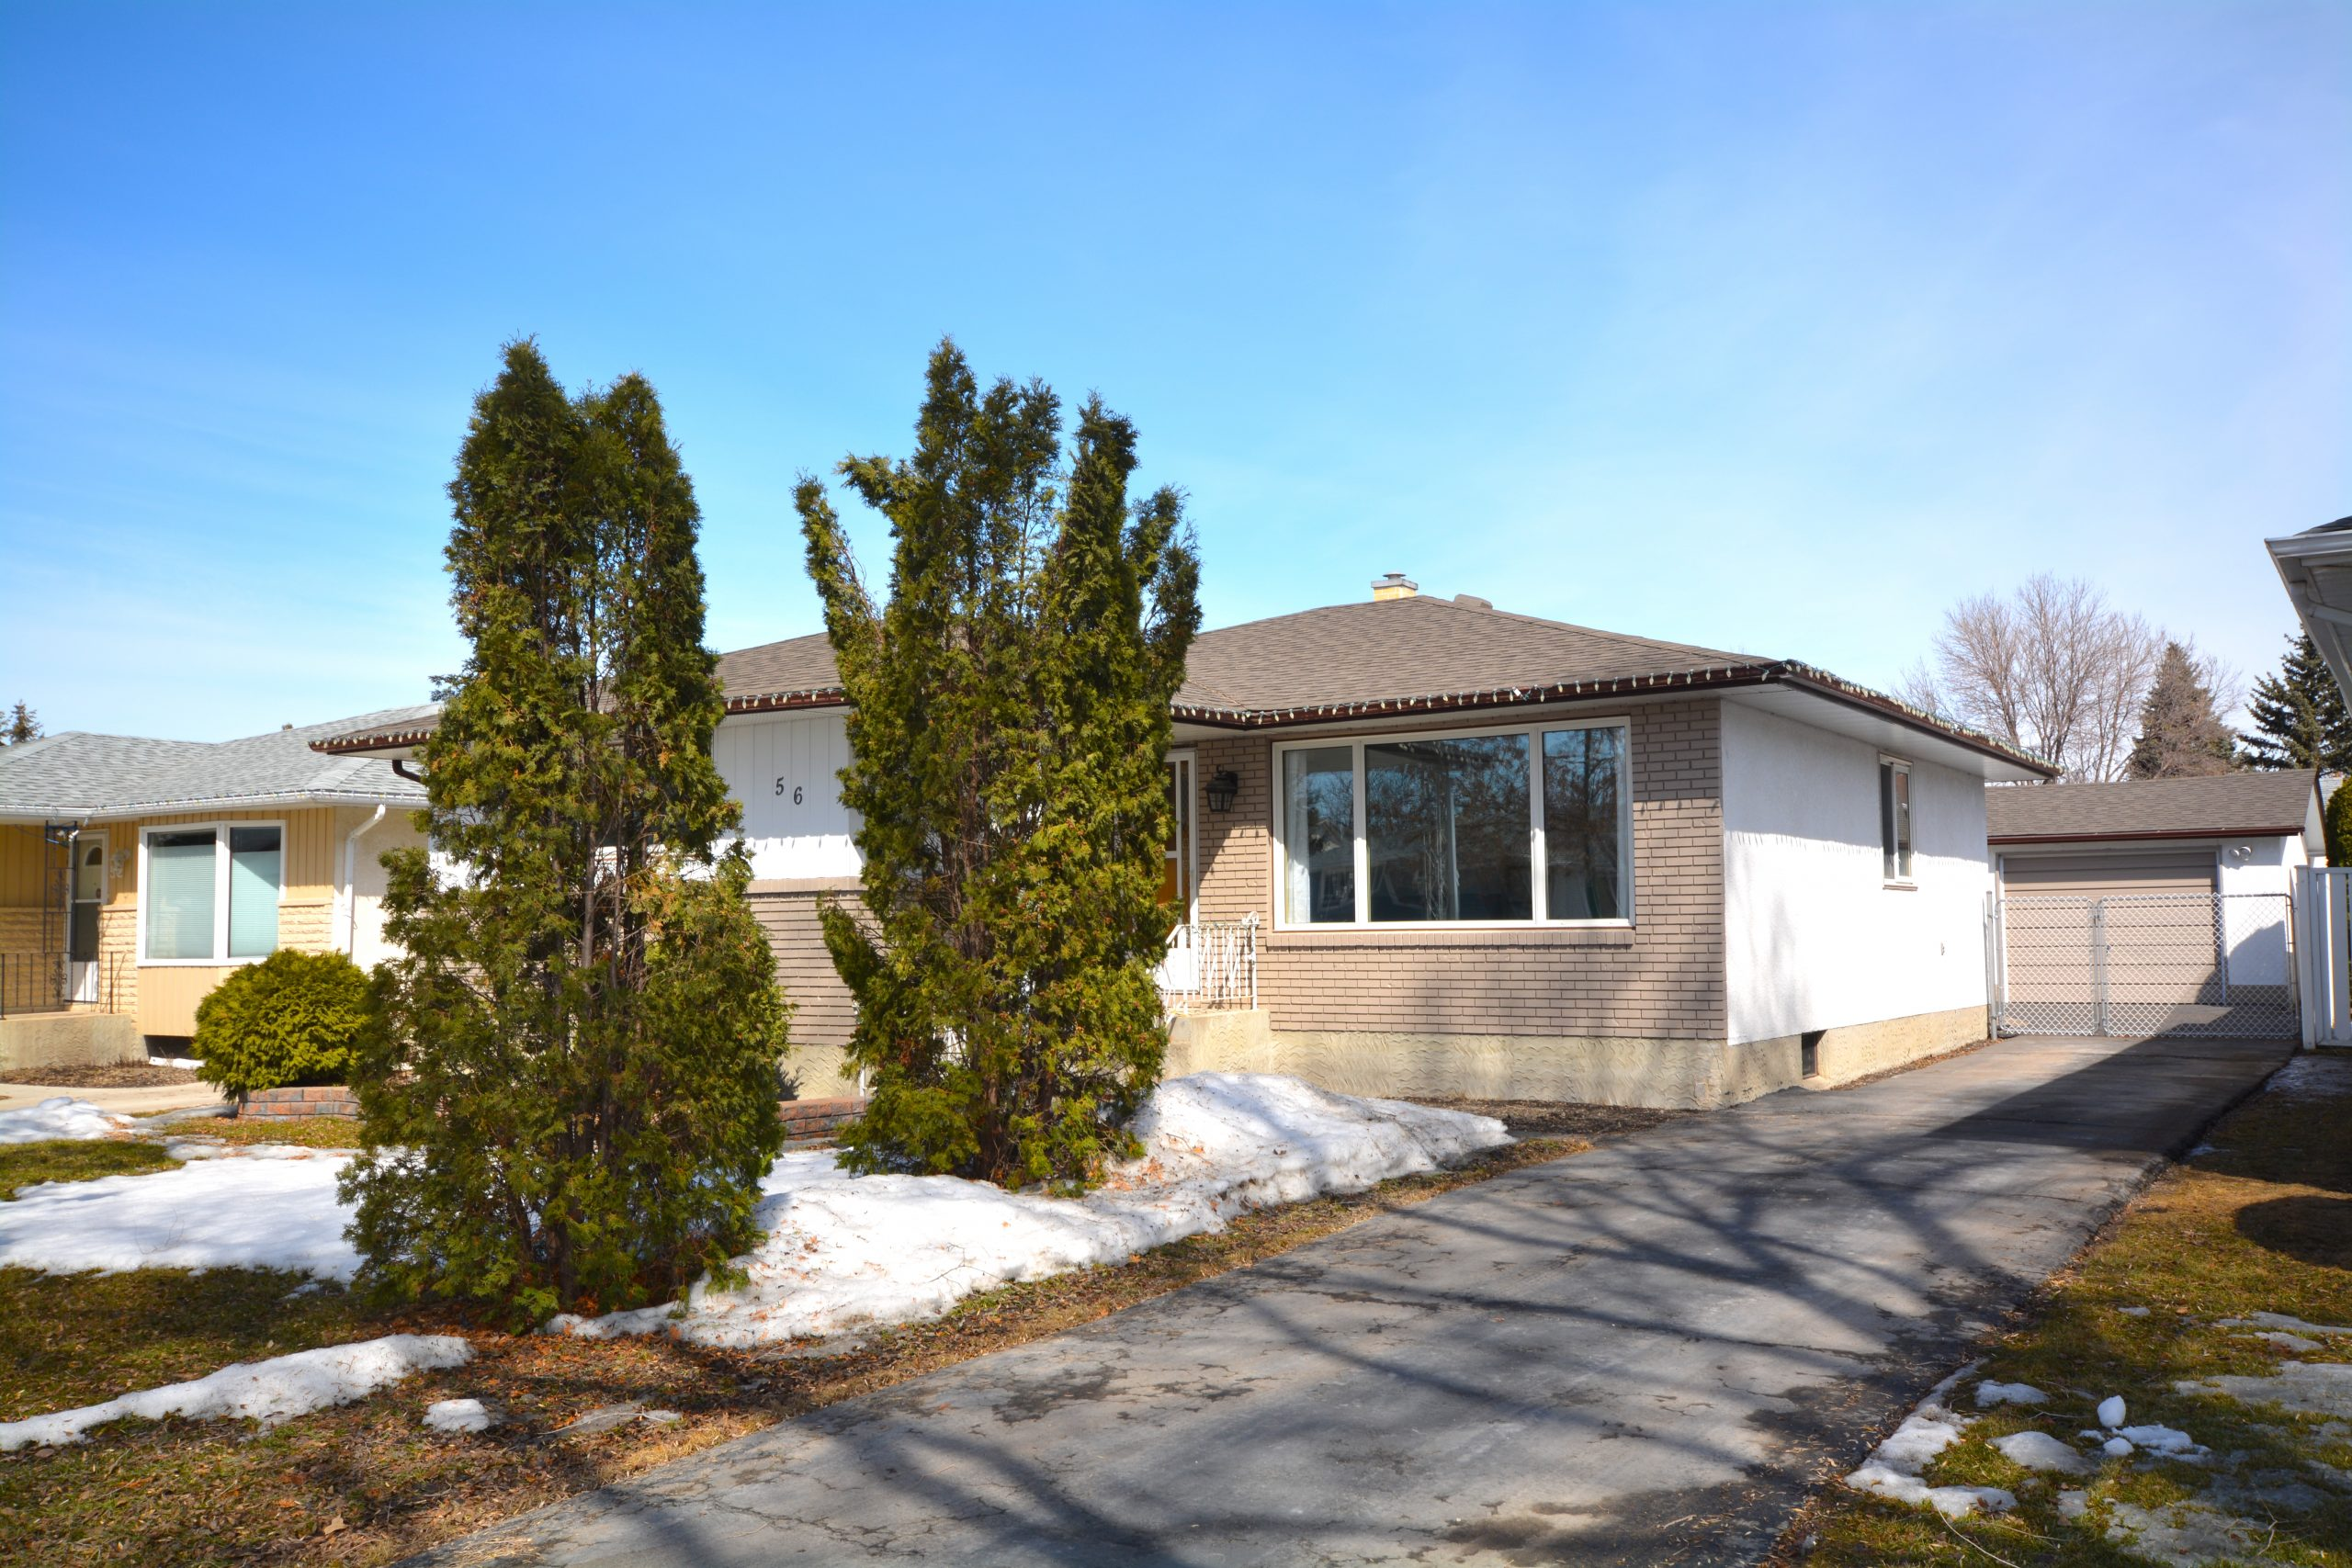 56 Gemini Avenue – North Kildonan Bungalow